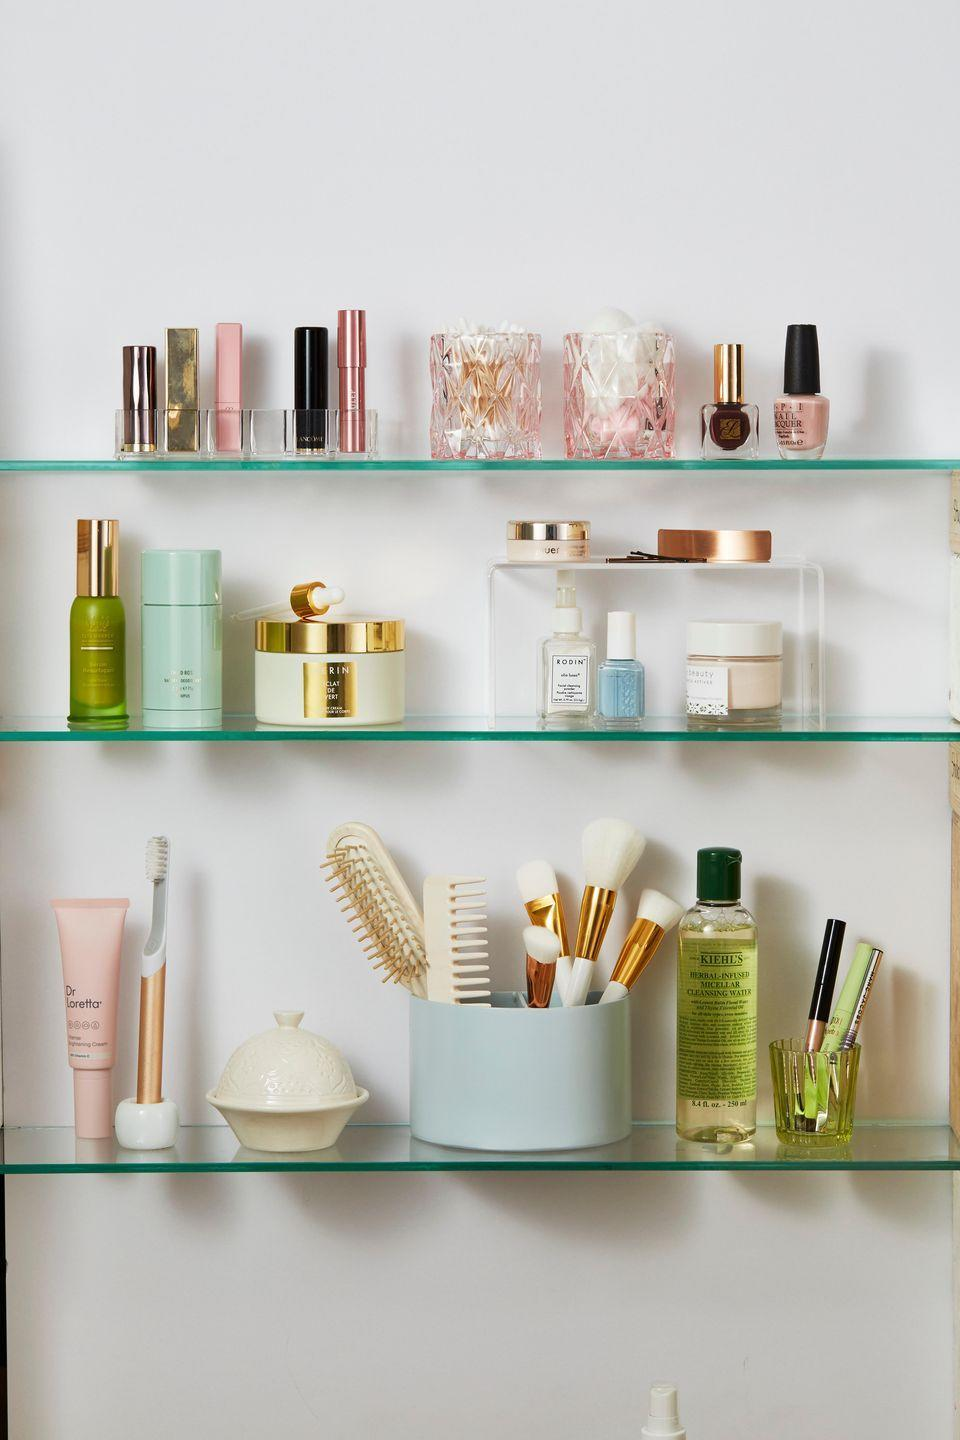 "<p>Getting rid of expired makeup, skincare, and hair products is a quick way to declutter. Not all products note an expiration date, but many say how many months the product will last after opening. ""To stay on top of their expiration date, use a thin-tipped permanent marker to write on the date you opened it,"" suggests organizing expert, <a href=""http://www.jeffreyphillip.com/"" rel=""nofollow noopener"" target=""_blank"" data-ylk=""slk:Jeffrey Phillip"" class=""link rapid-noclick-resp"">Jeffrey Phillip</a>.</p>"